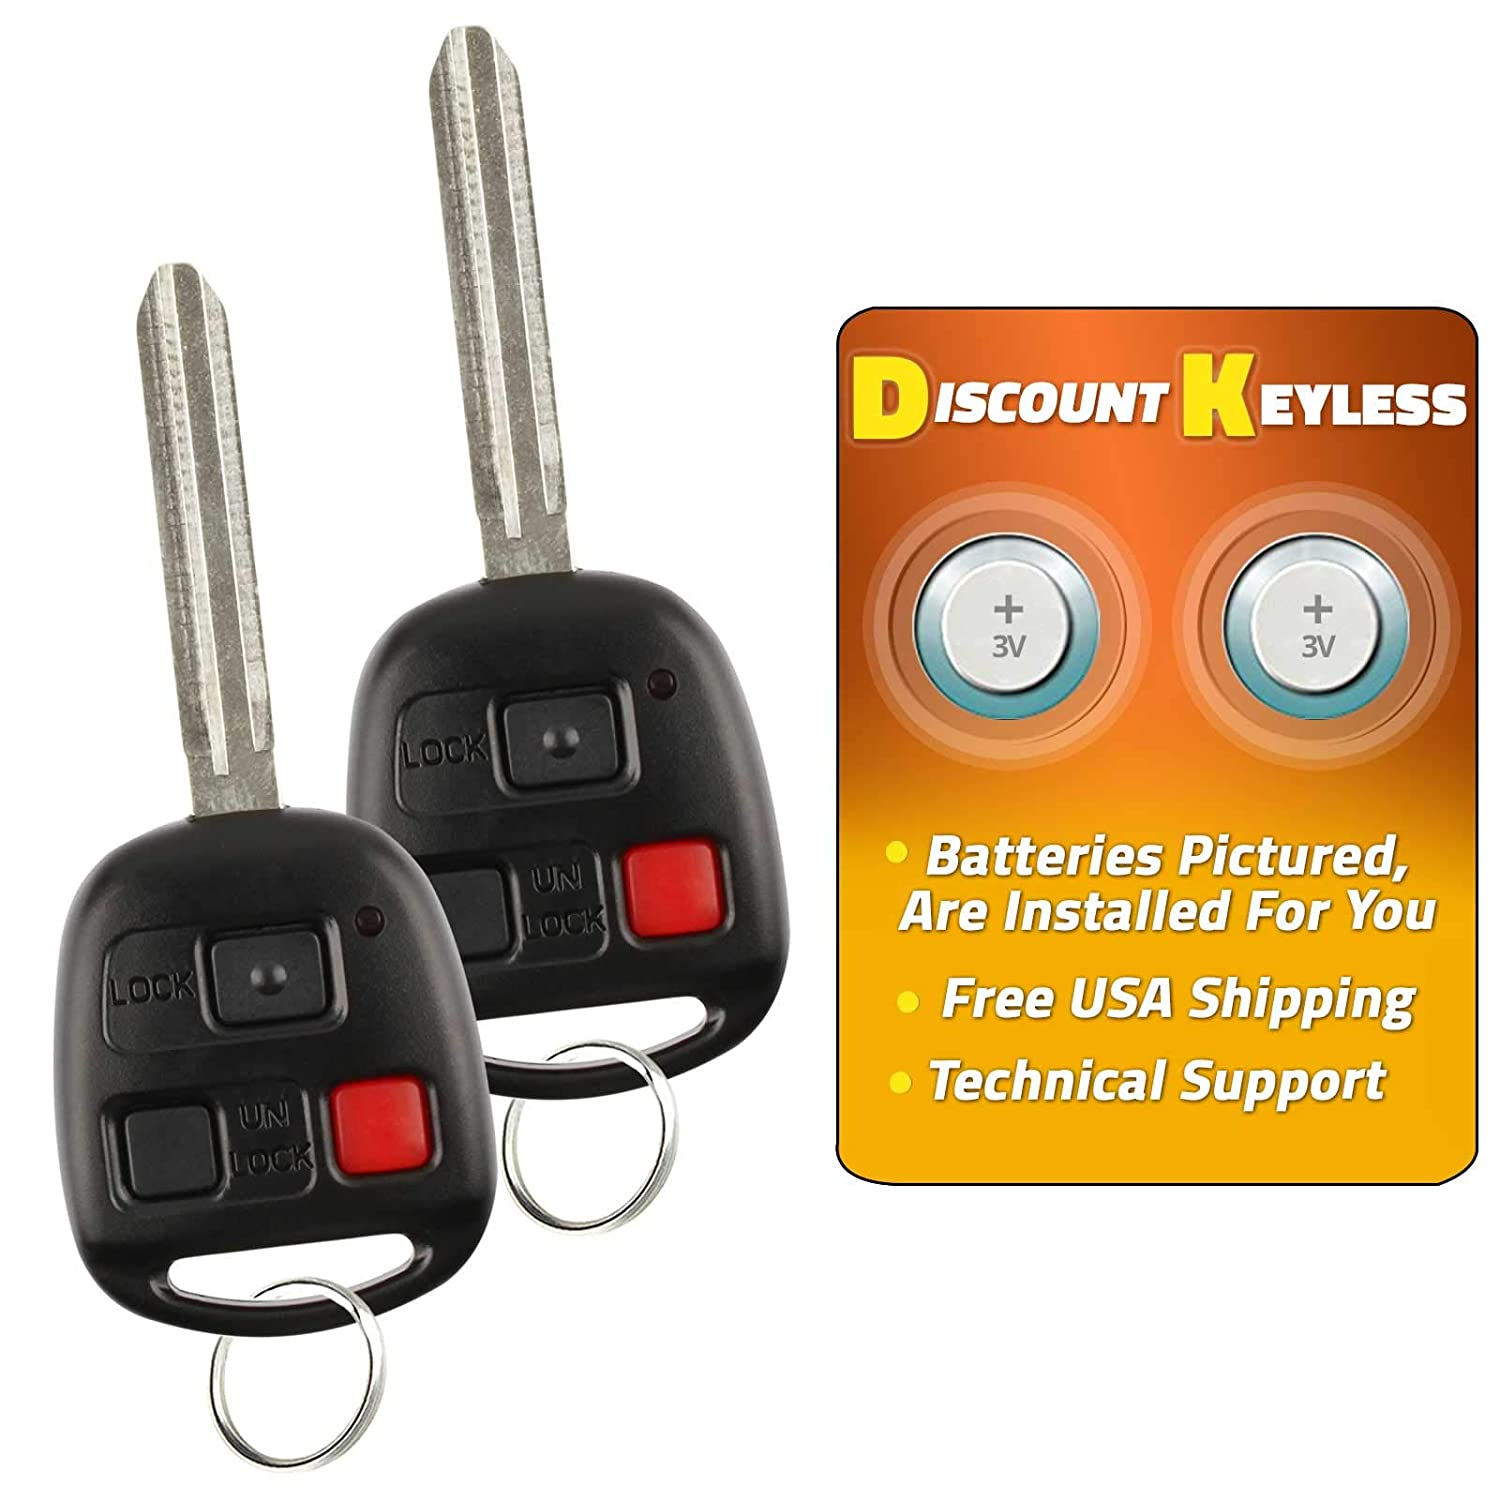 Discount Keyless Entry Remote Control Fob Replacement Uncut Car Ignition Key Fob For FJ Land Cruiser HYQ1512V 2 Pack